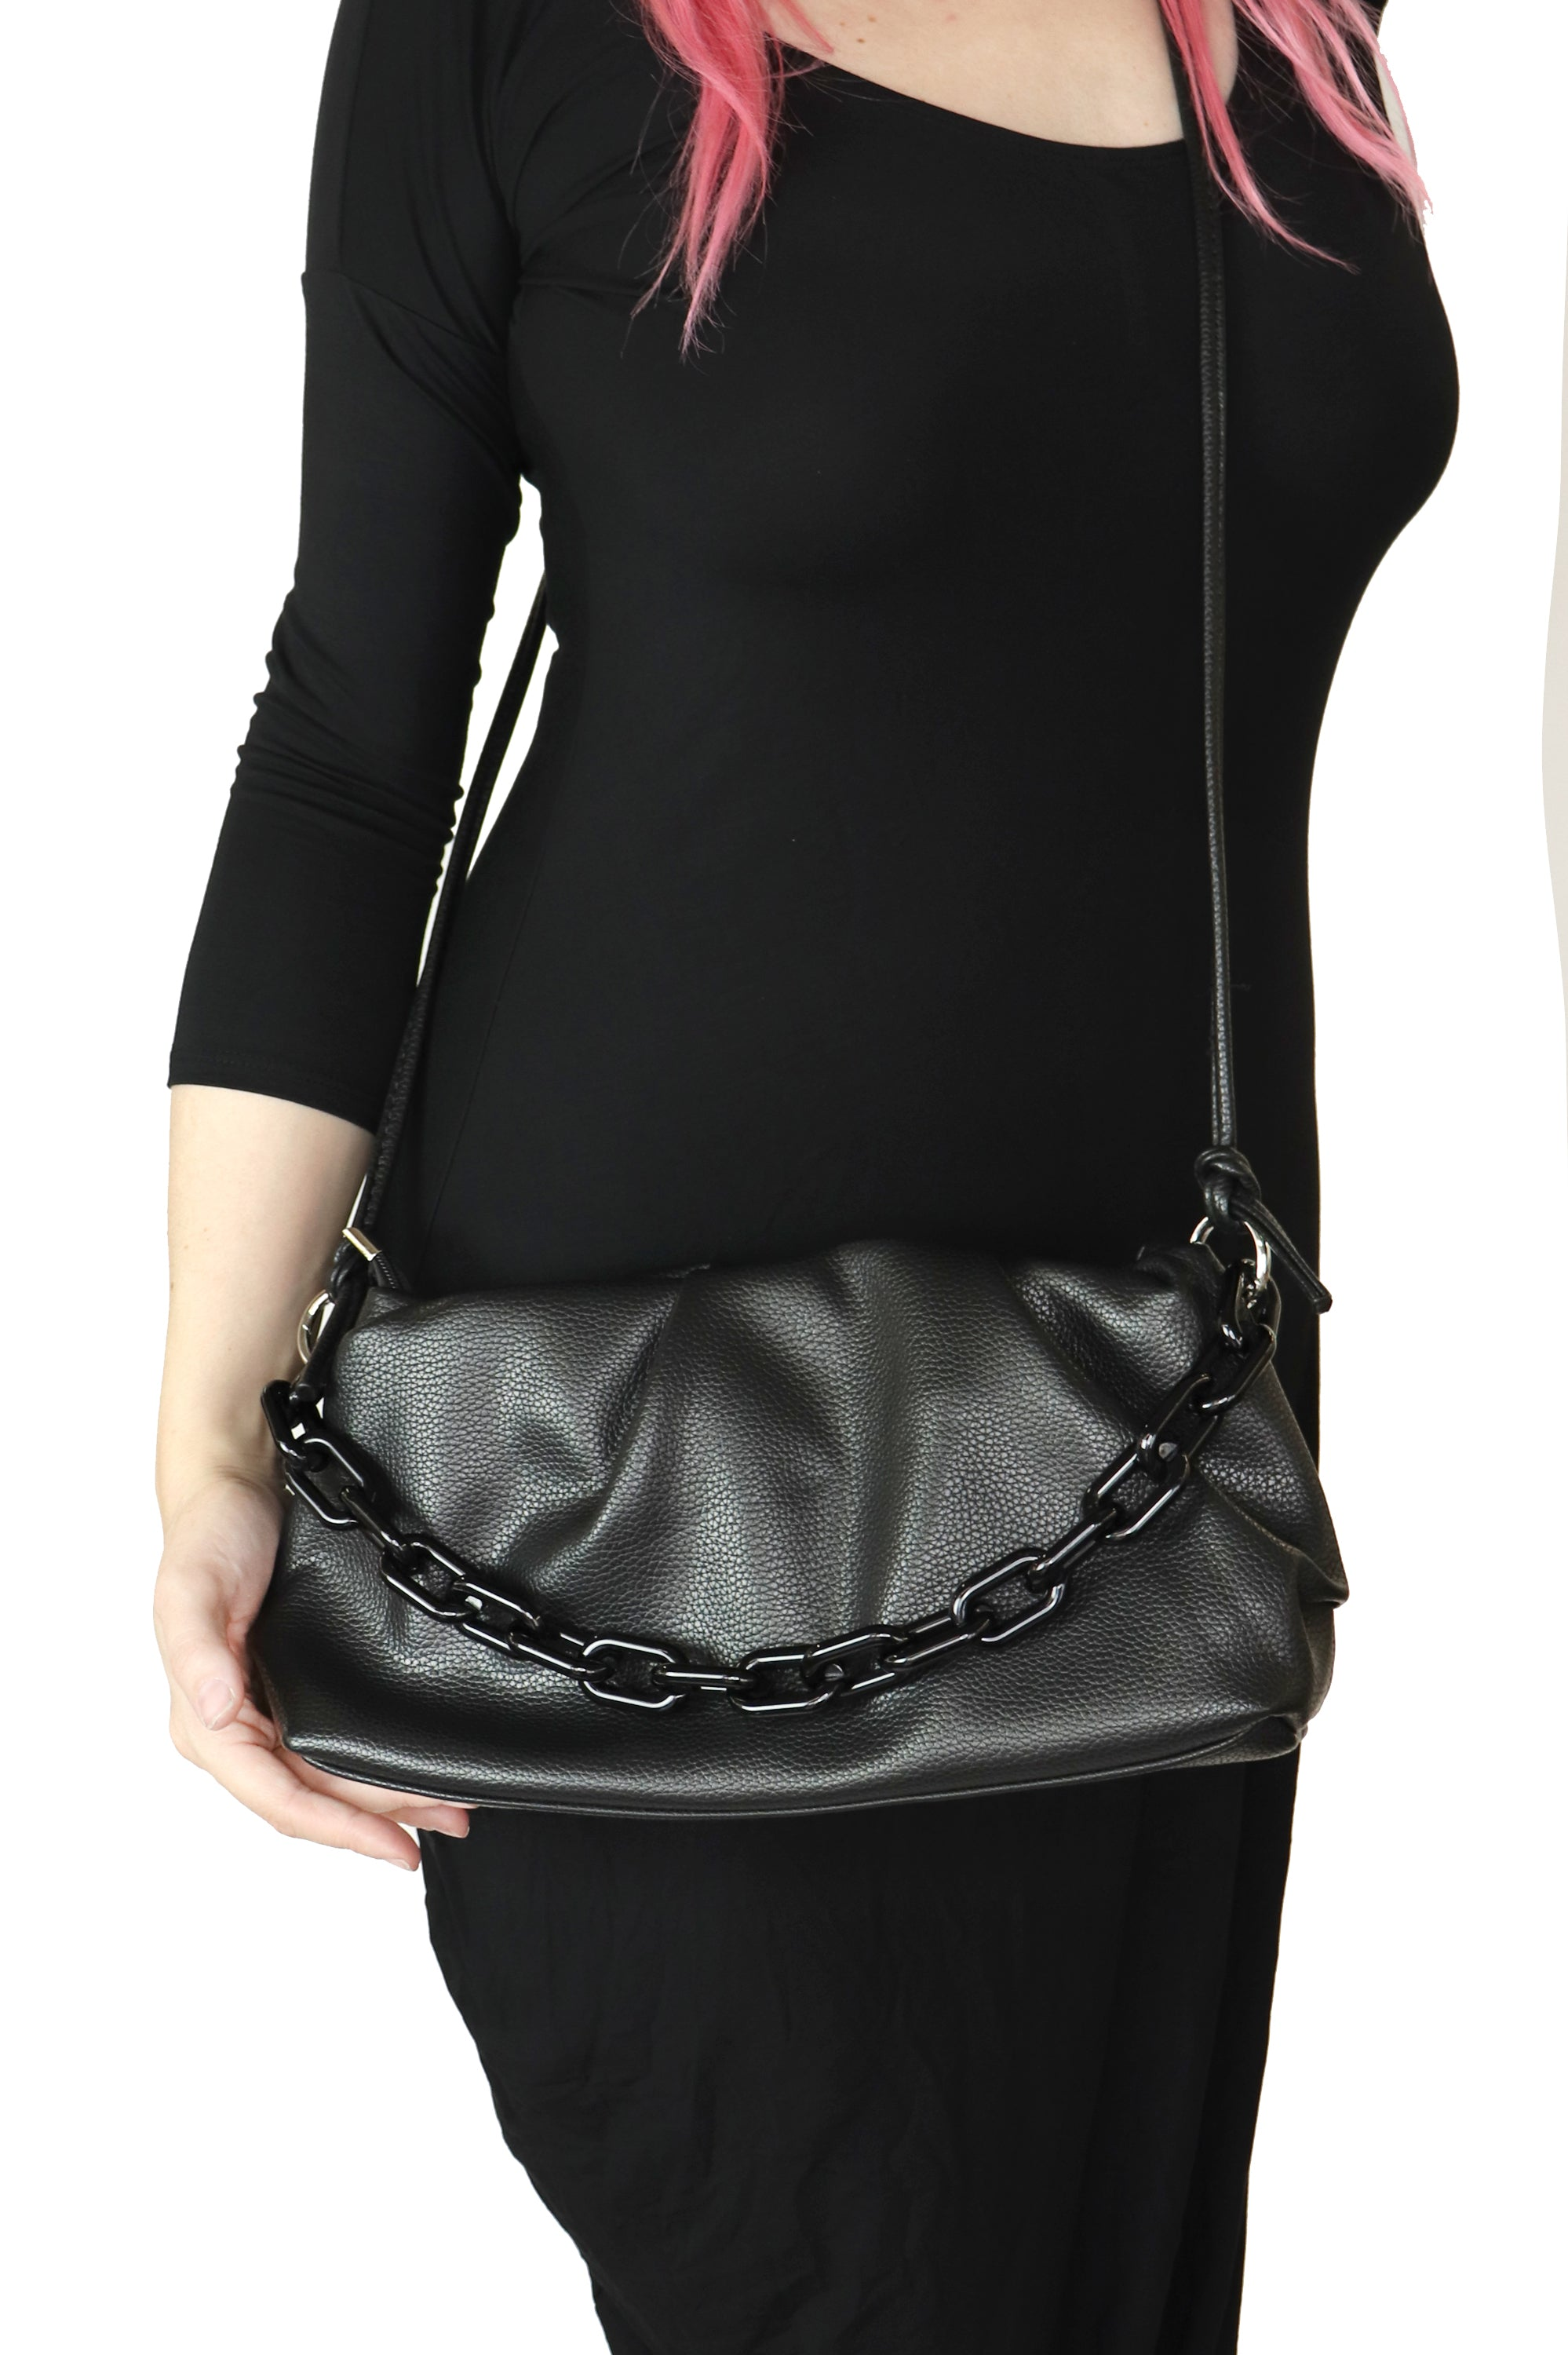 Dark Entries Crossbody Bag